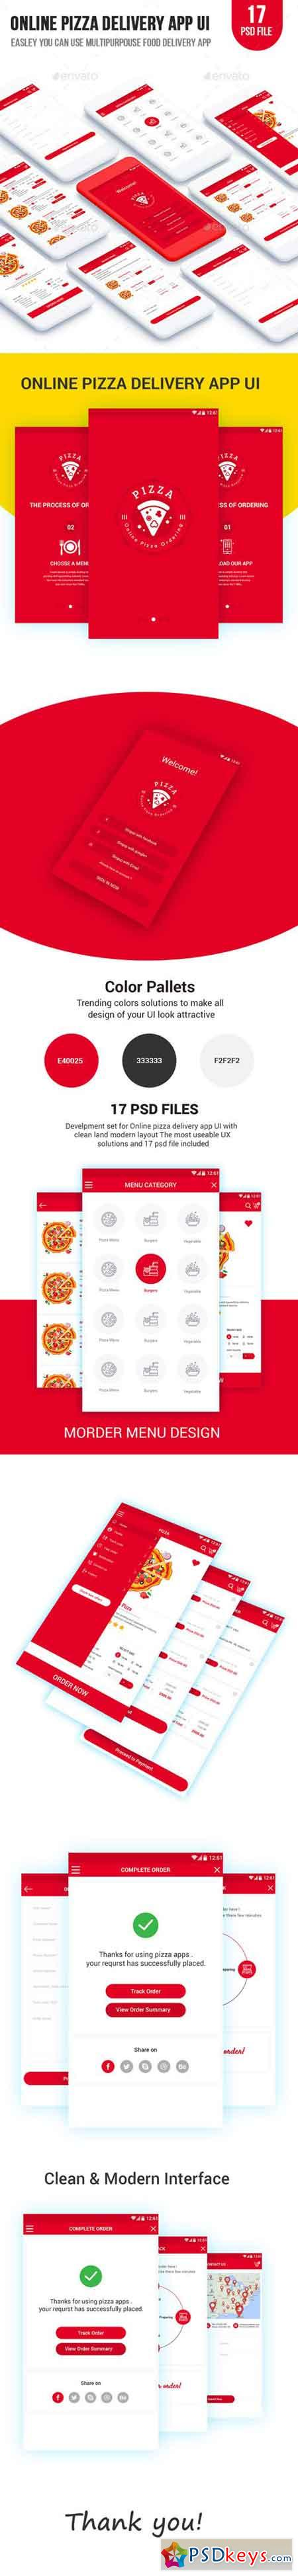 Online Pizza Delivery App UI 20787998